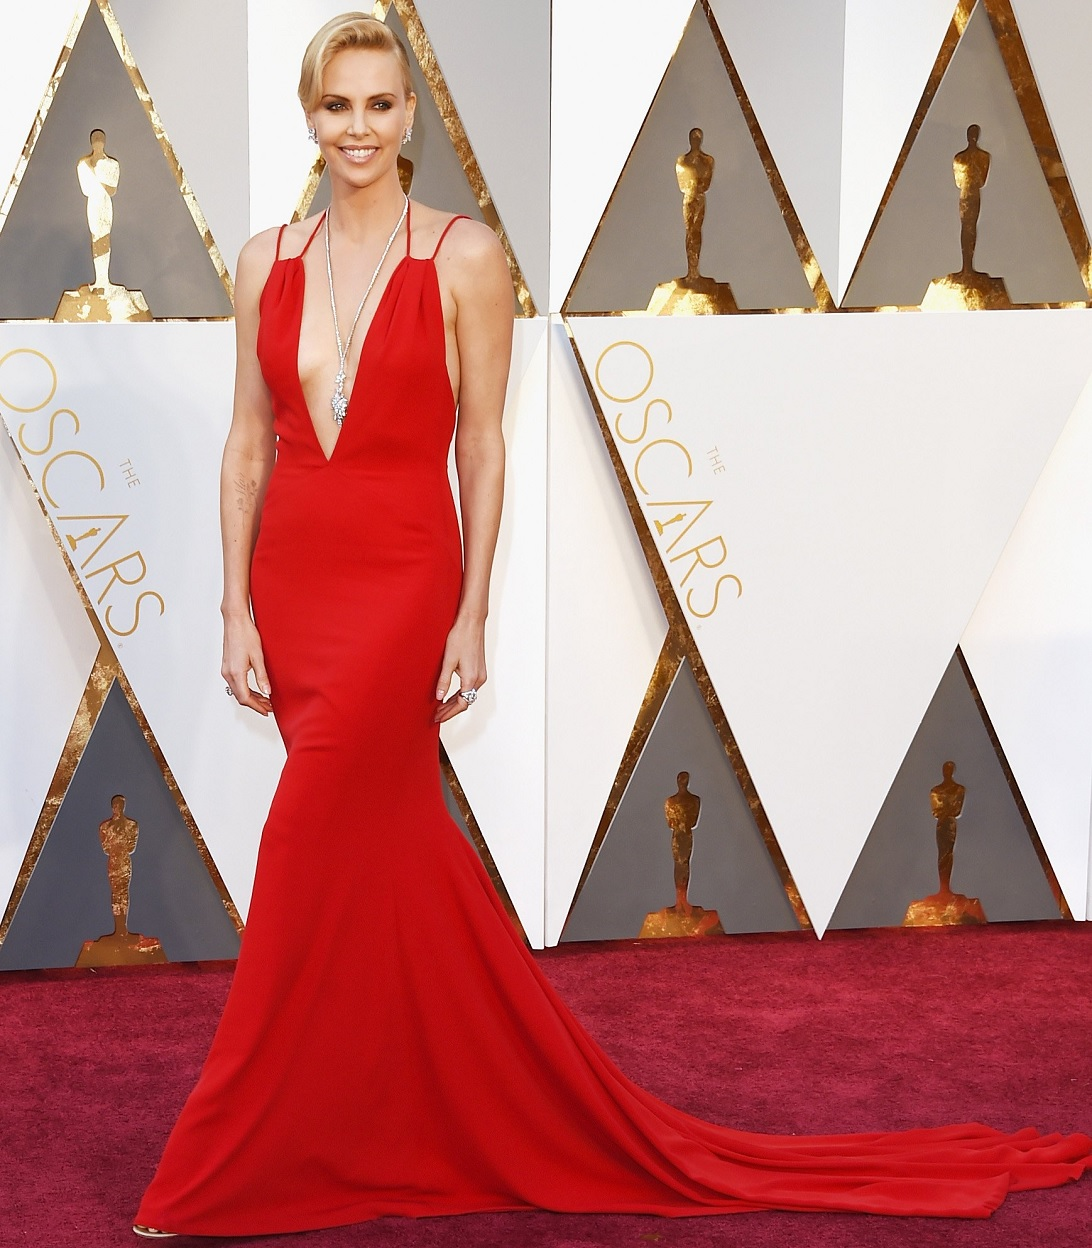 oscars-2016-best-dressed-charlize-theron-in-red-gown